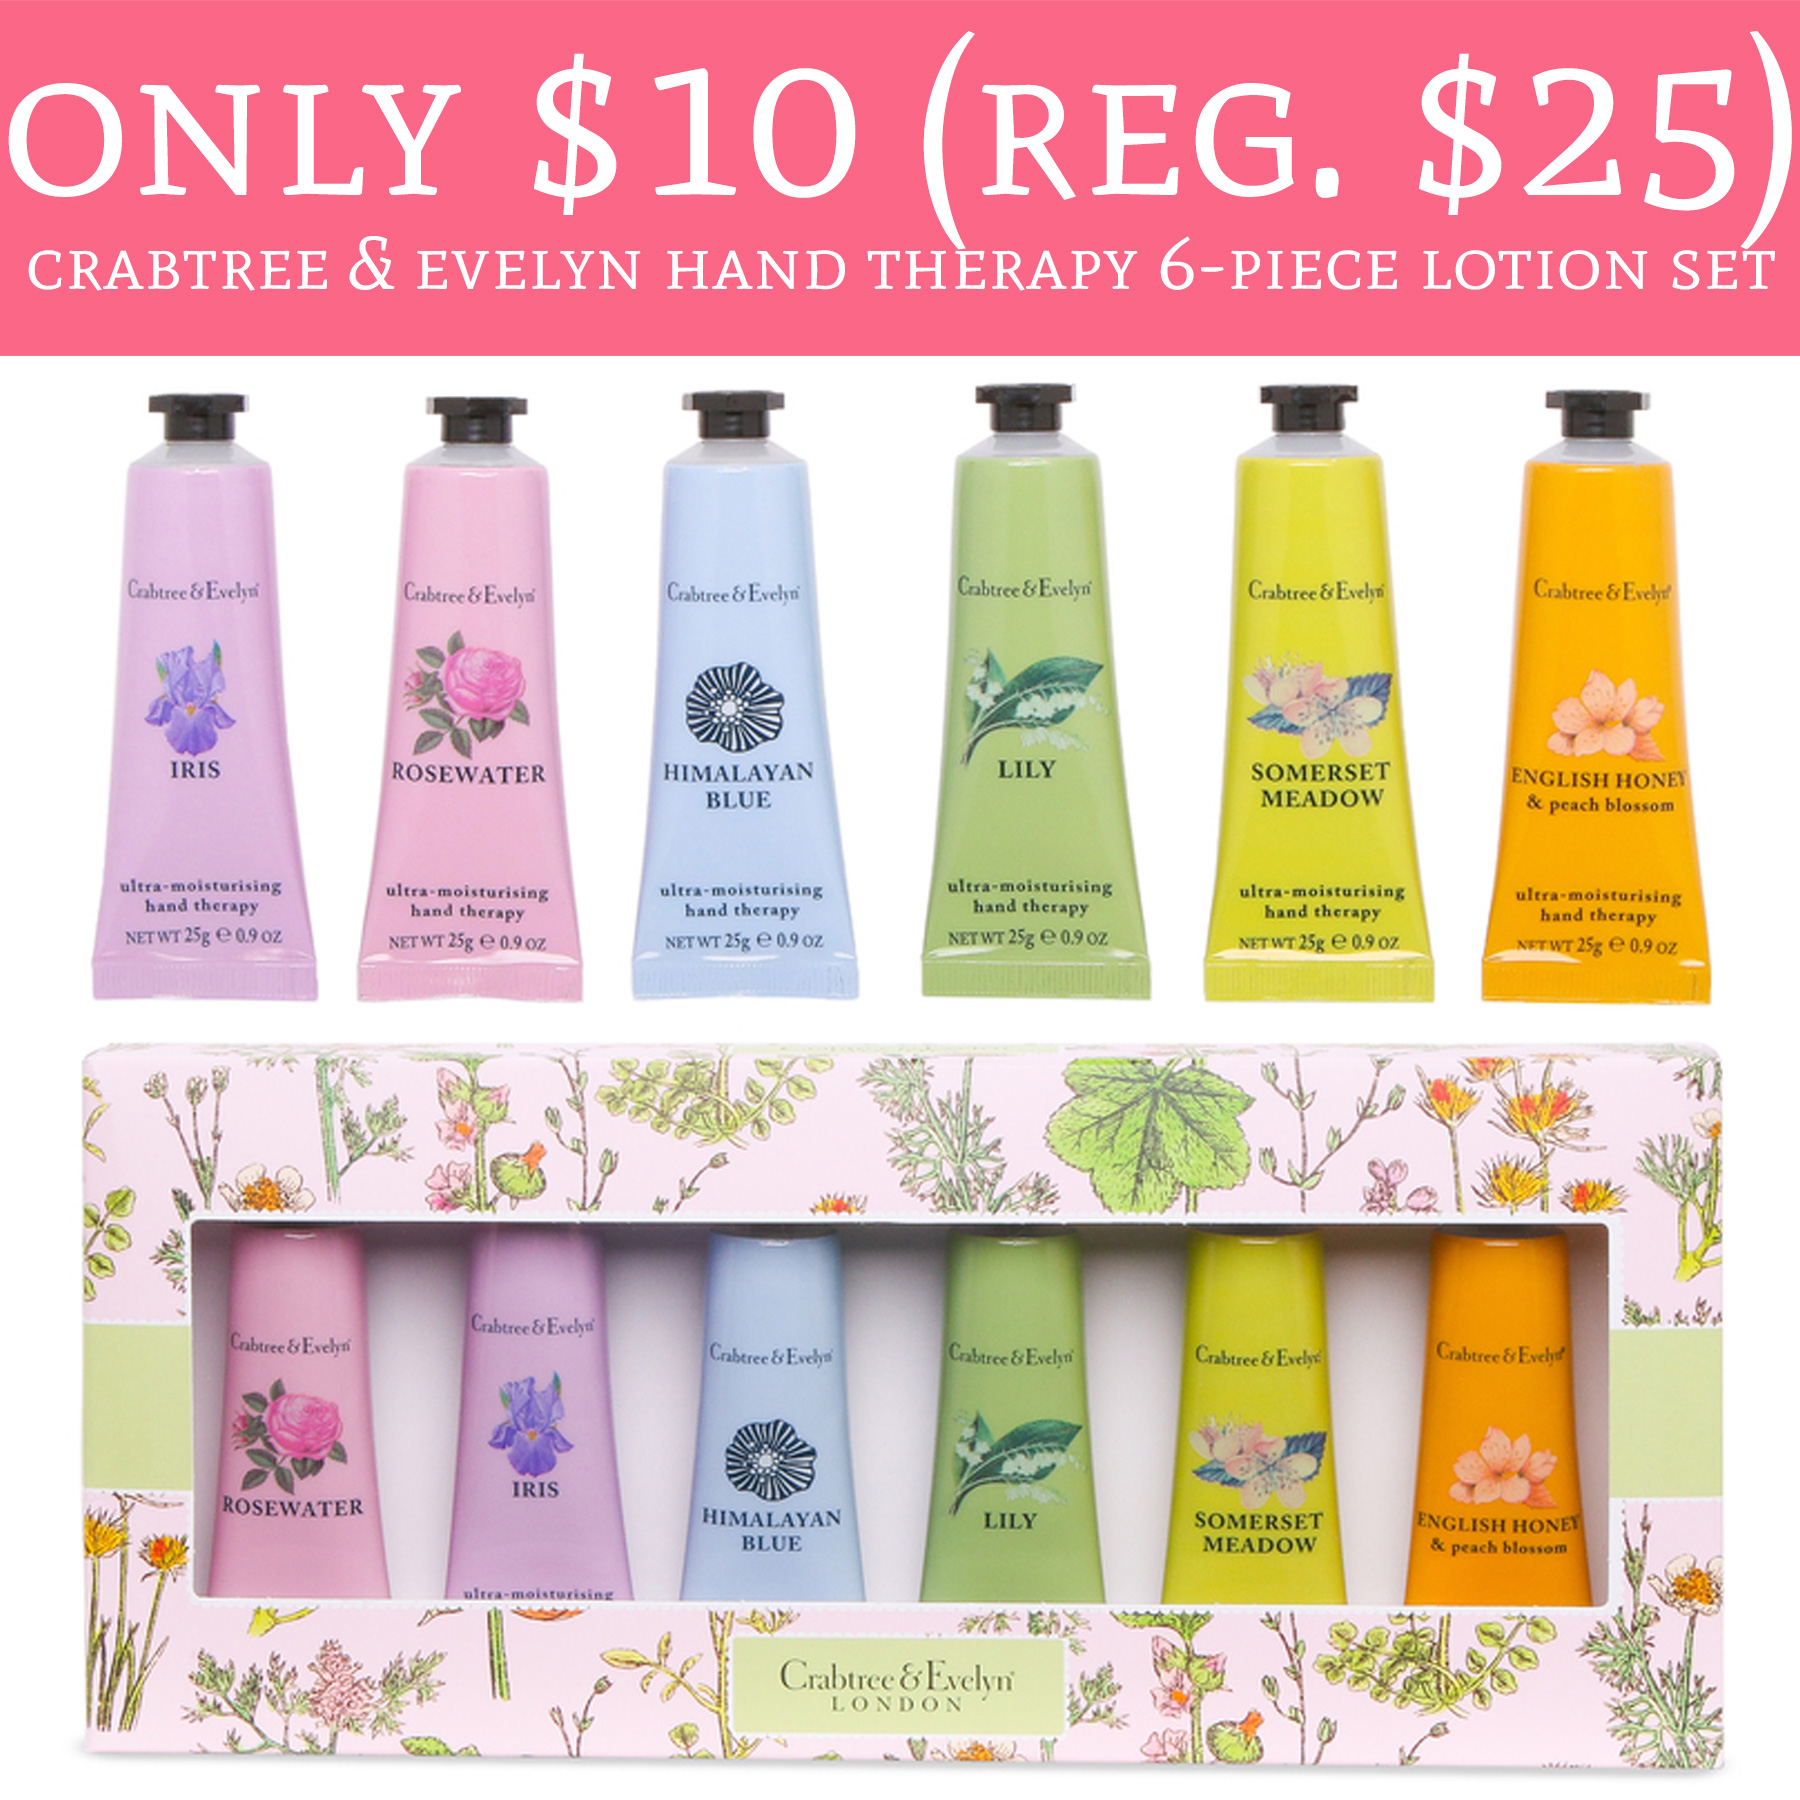 Here you can find the latest Crabtree & Evelyn discount codes